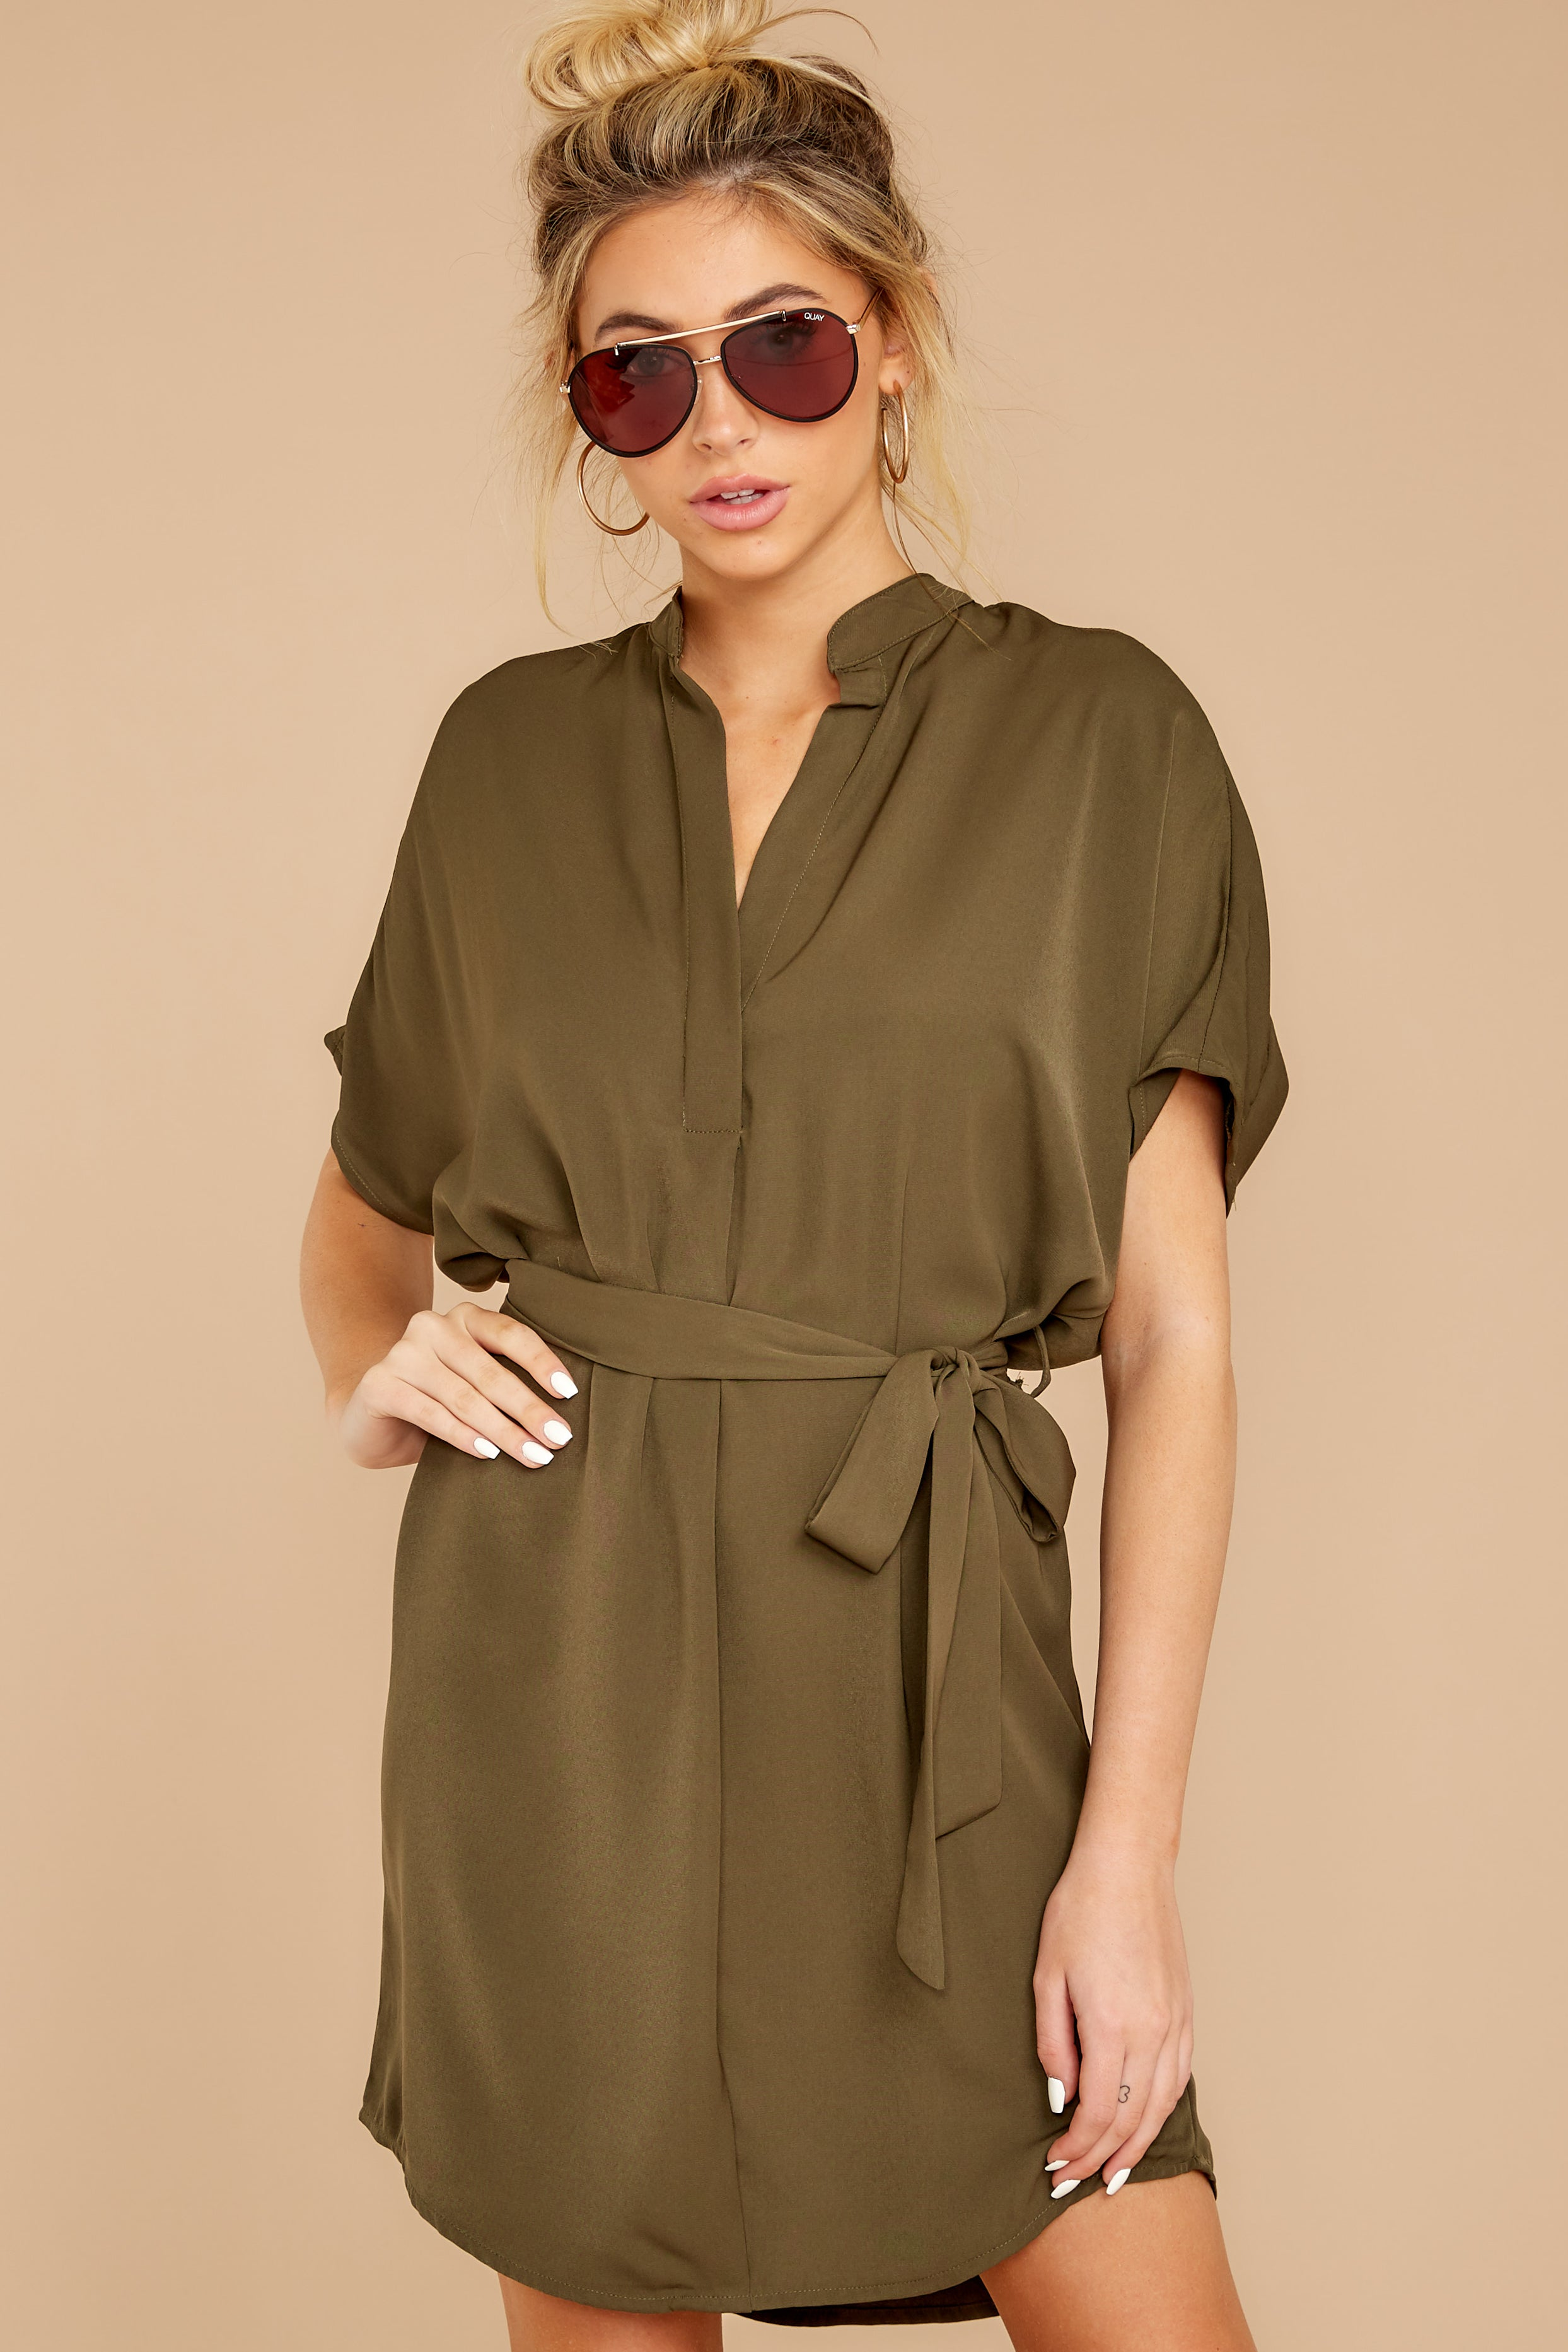 4 Around The Clock Olive Green Dress at reddress.com